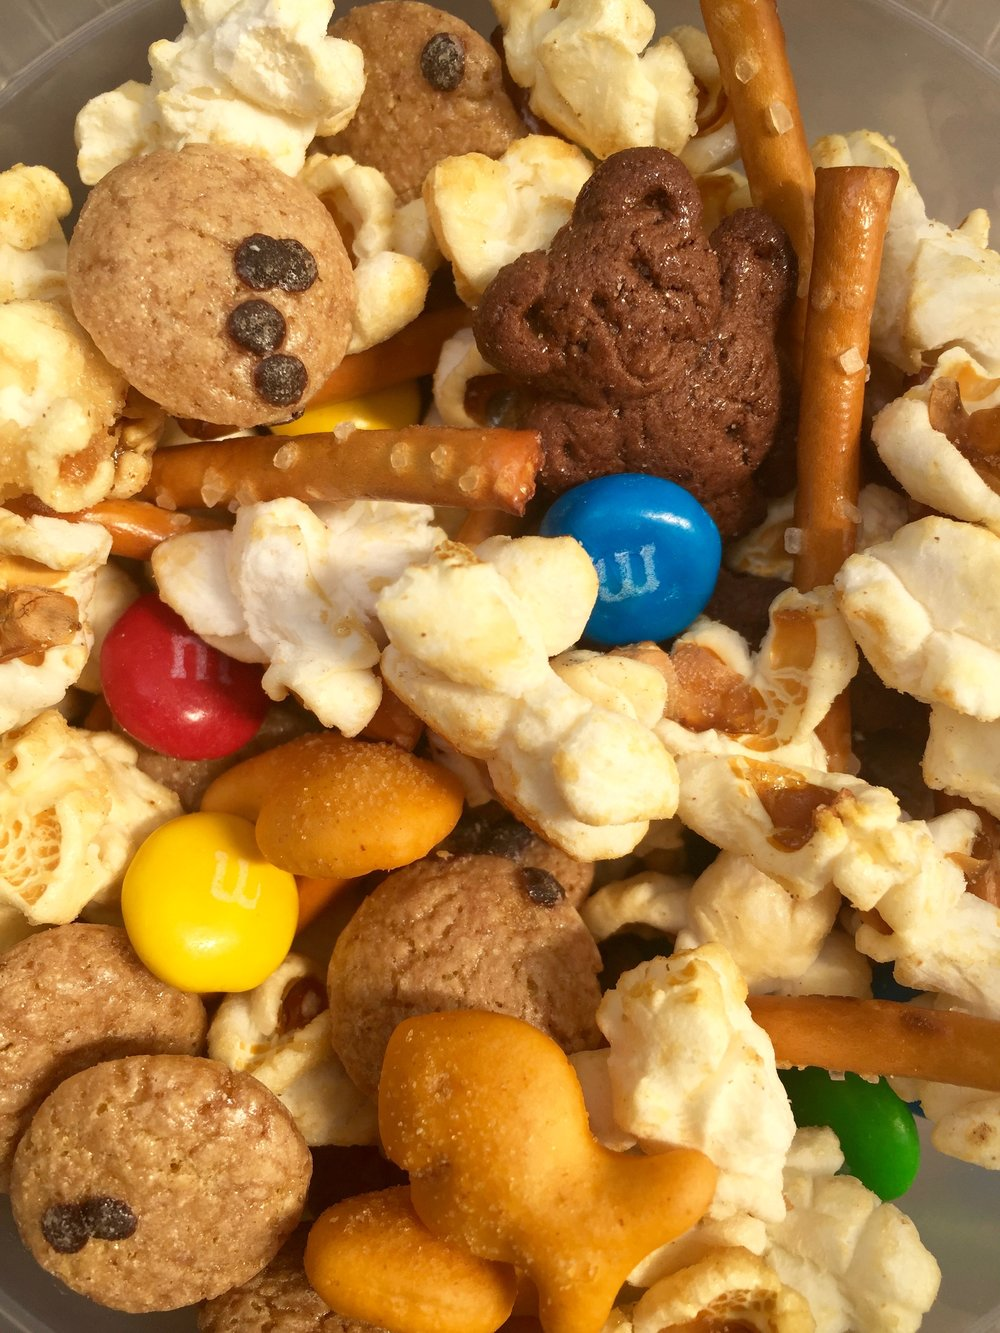 Trashy Trail Mix : Cookie Crisp, Teddy Grahams, Goldfish, M&M's, popcorn, and pretzel sticks